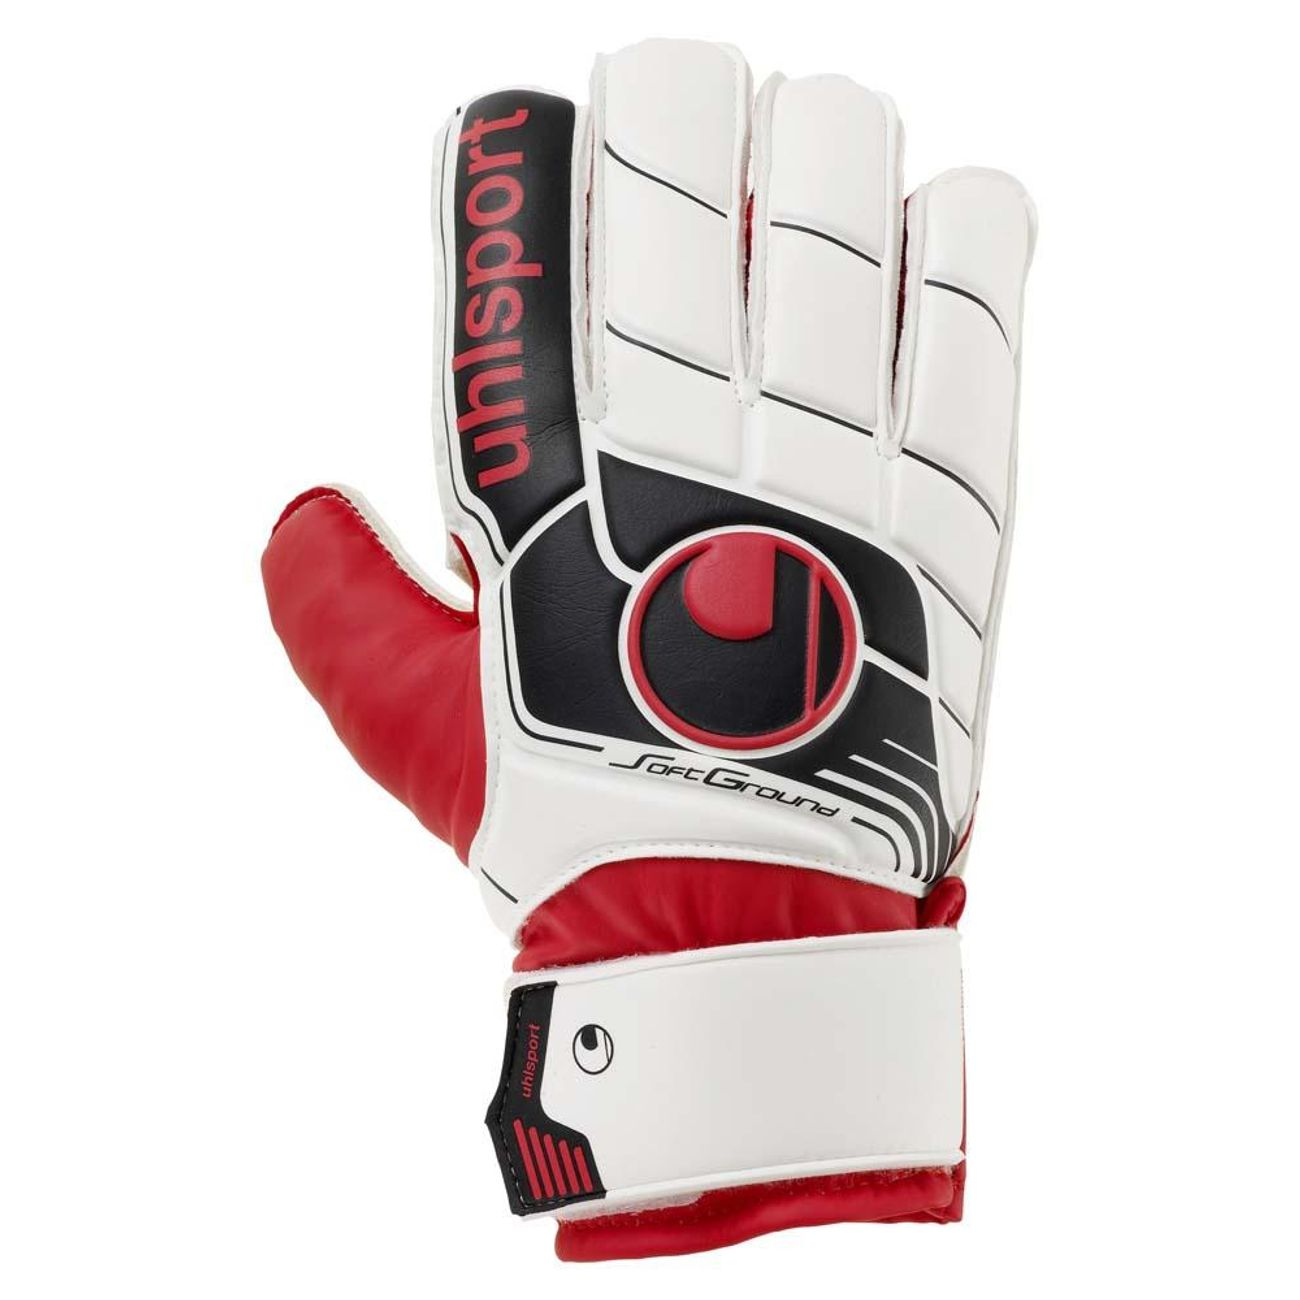 Football Uhlsport Fangmaschine Adulte Soft Starter 54cRLS3Aqj